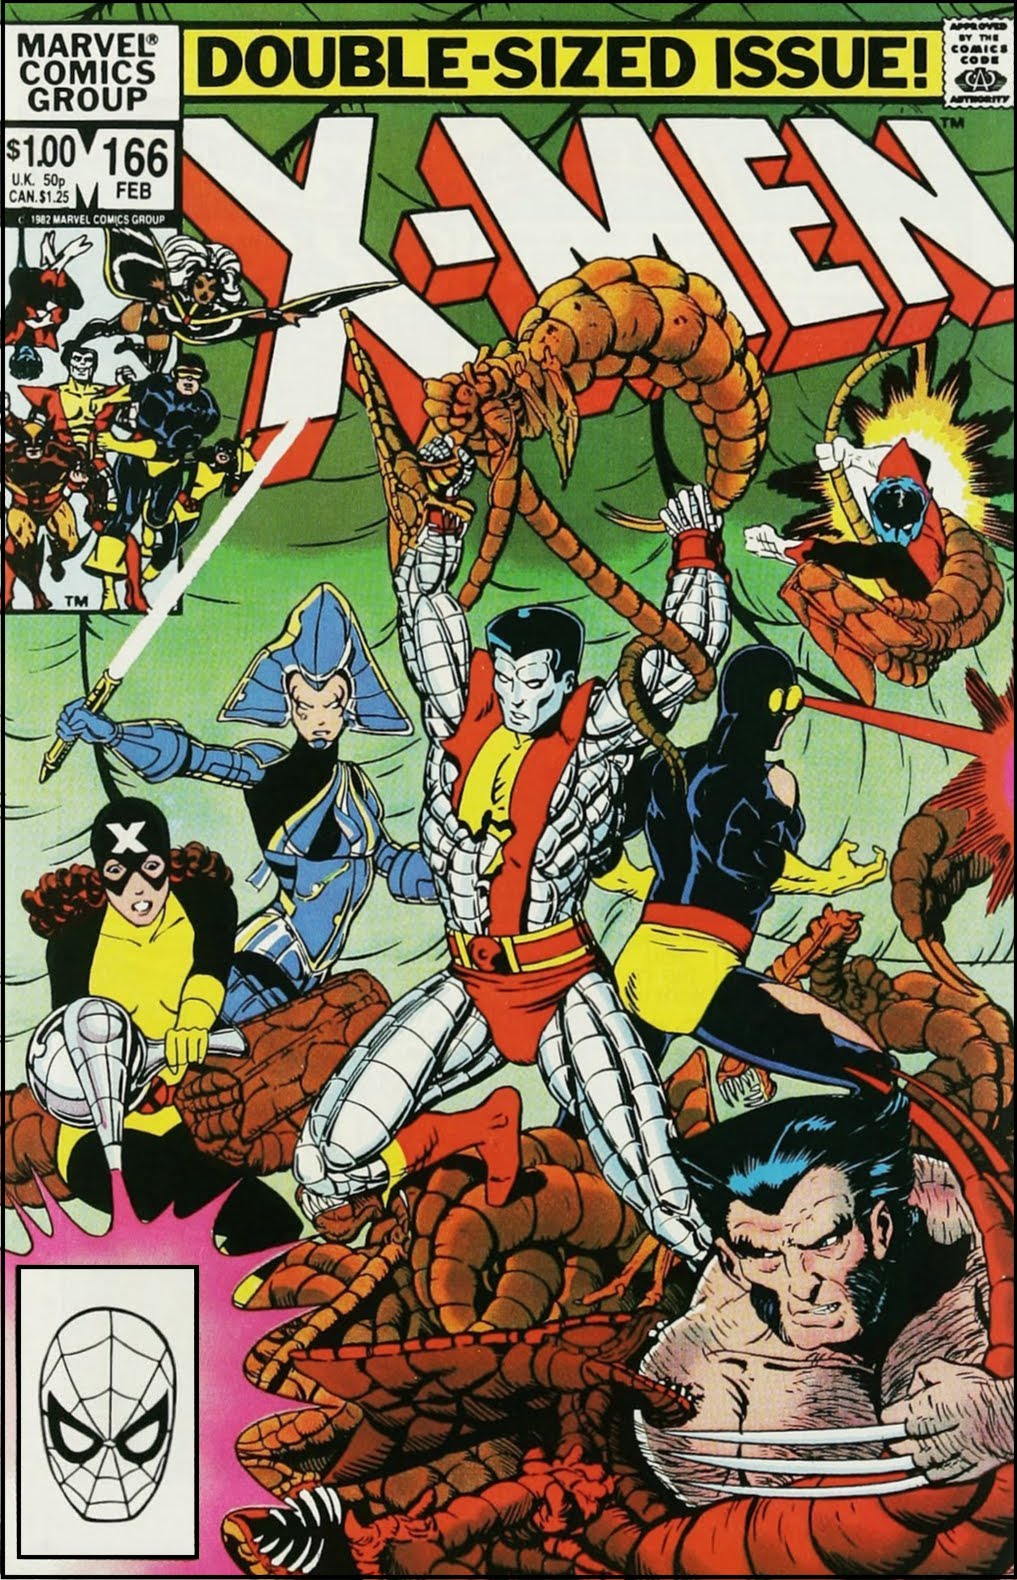 X-Men in fierce battle with aliens that resemble giant insects, arachnids, or crustaceans.